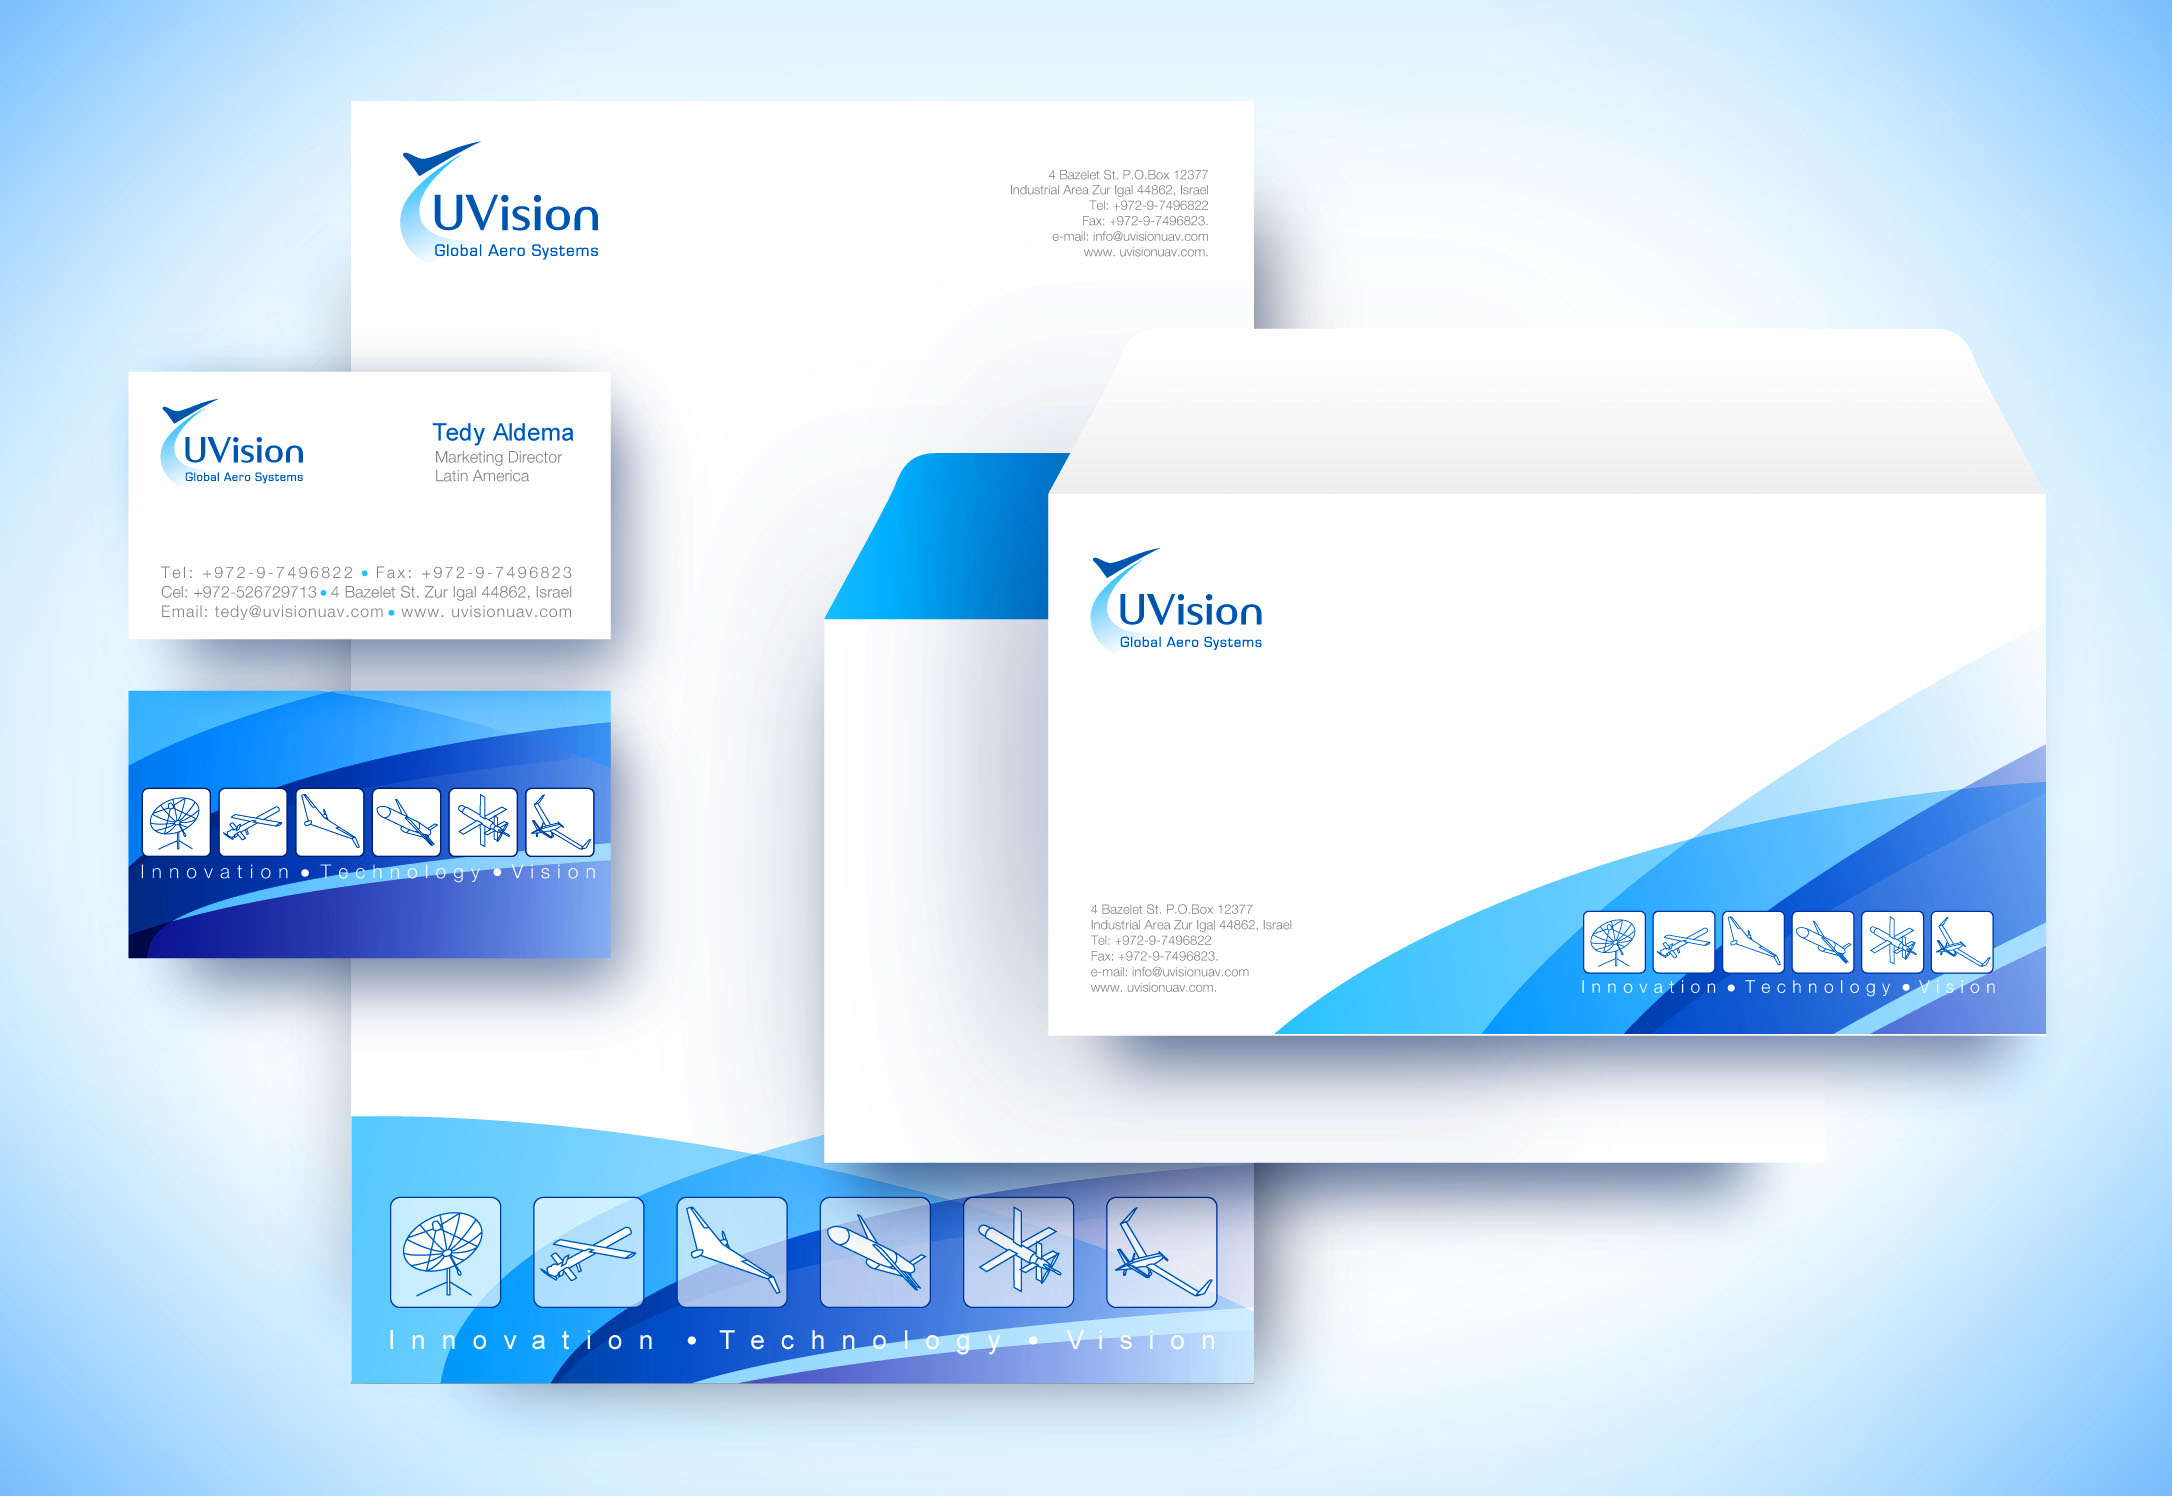 Uvision_stationary.jpg